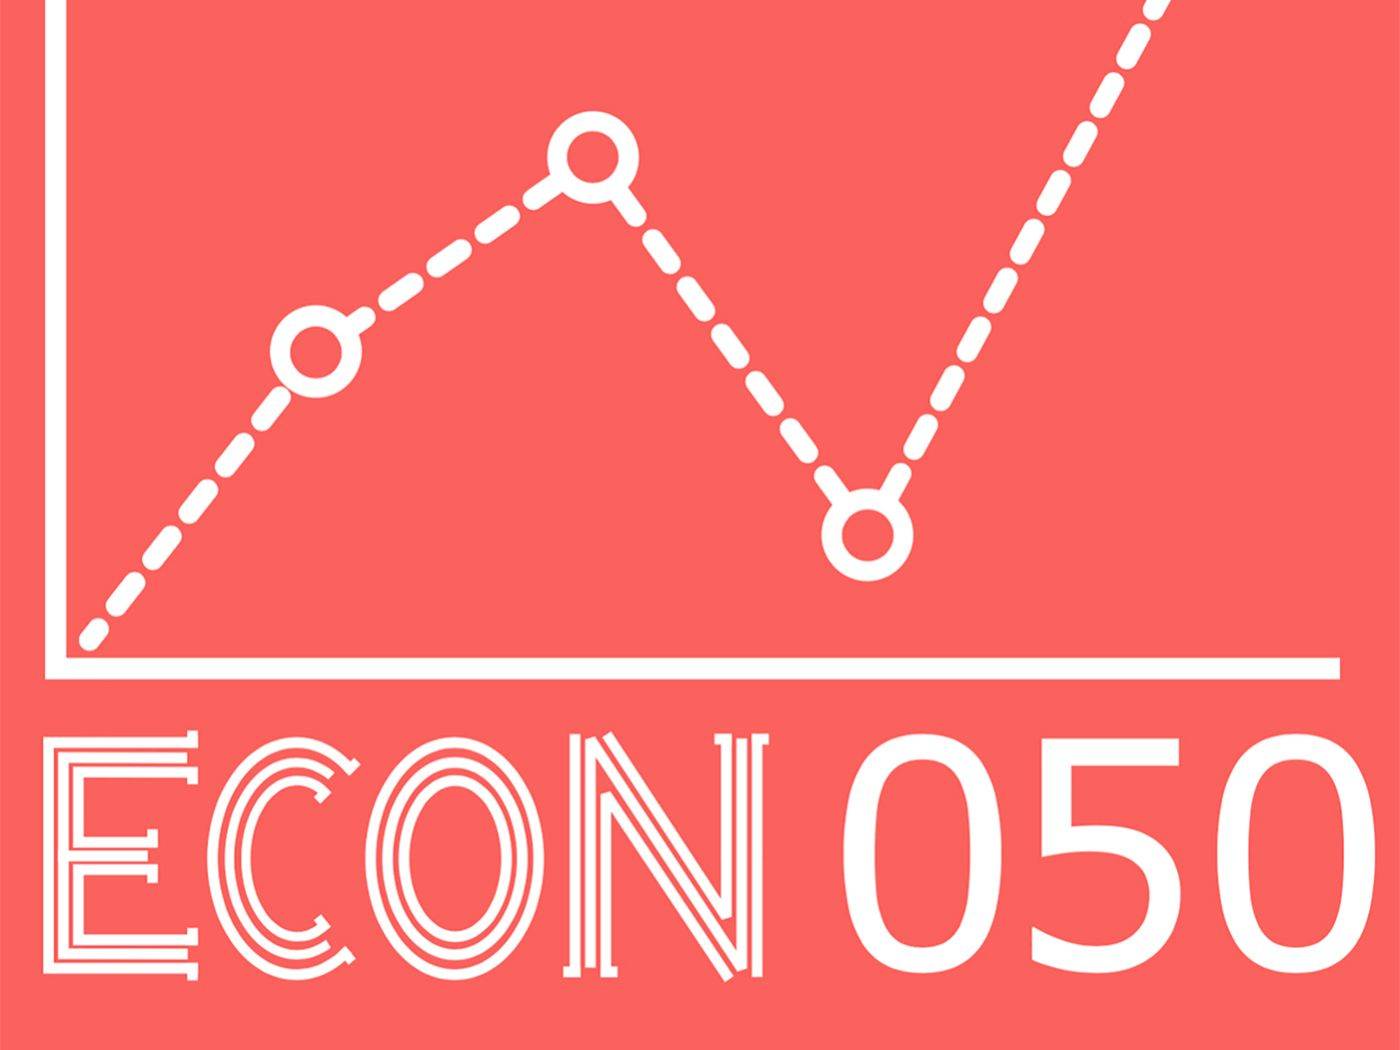 Econ 050 is a podcast made in collaboration between the Faculty of Economics and Business and The Northern Times.